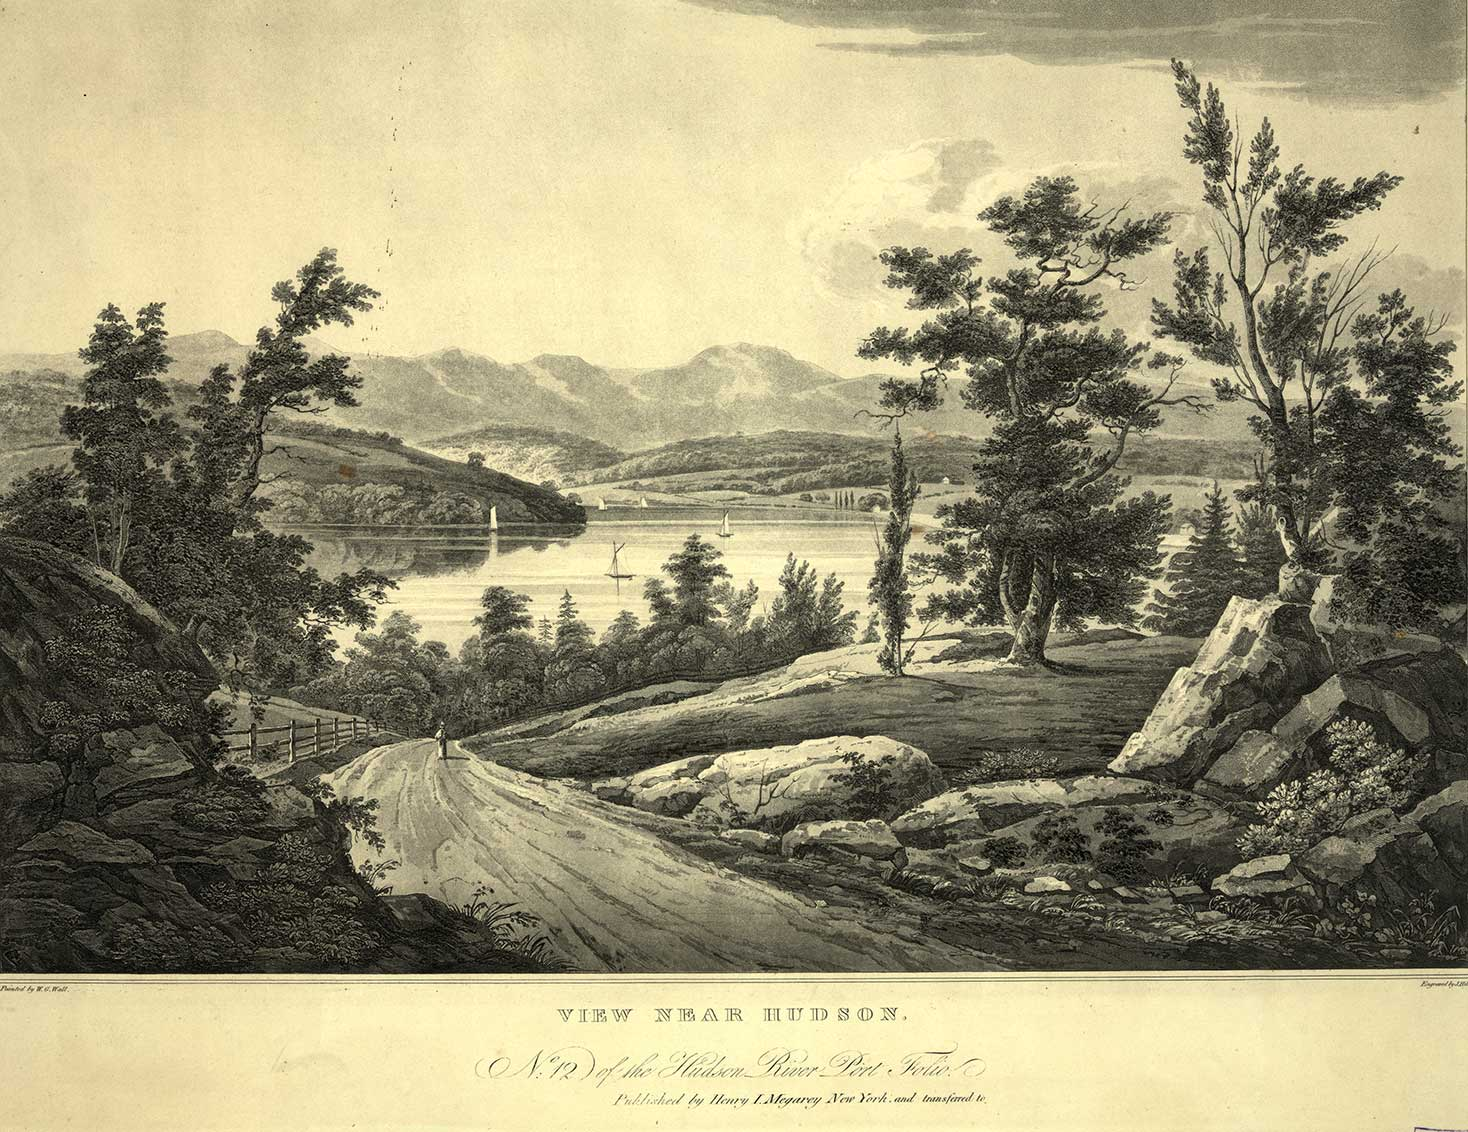 View Near the Hudson River # 12of the Hudson River Port Folio published by Henry I. Megarey, New York. Engraved by J. Mill. Painted by W.G. Wall. LOC: 03823.